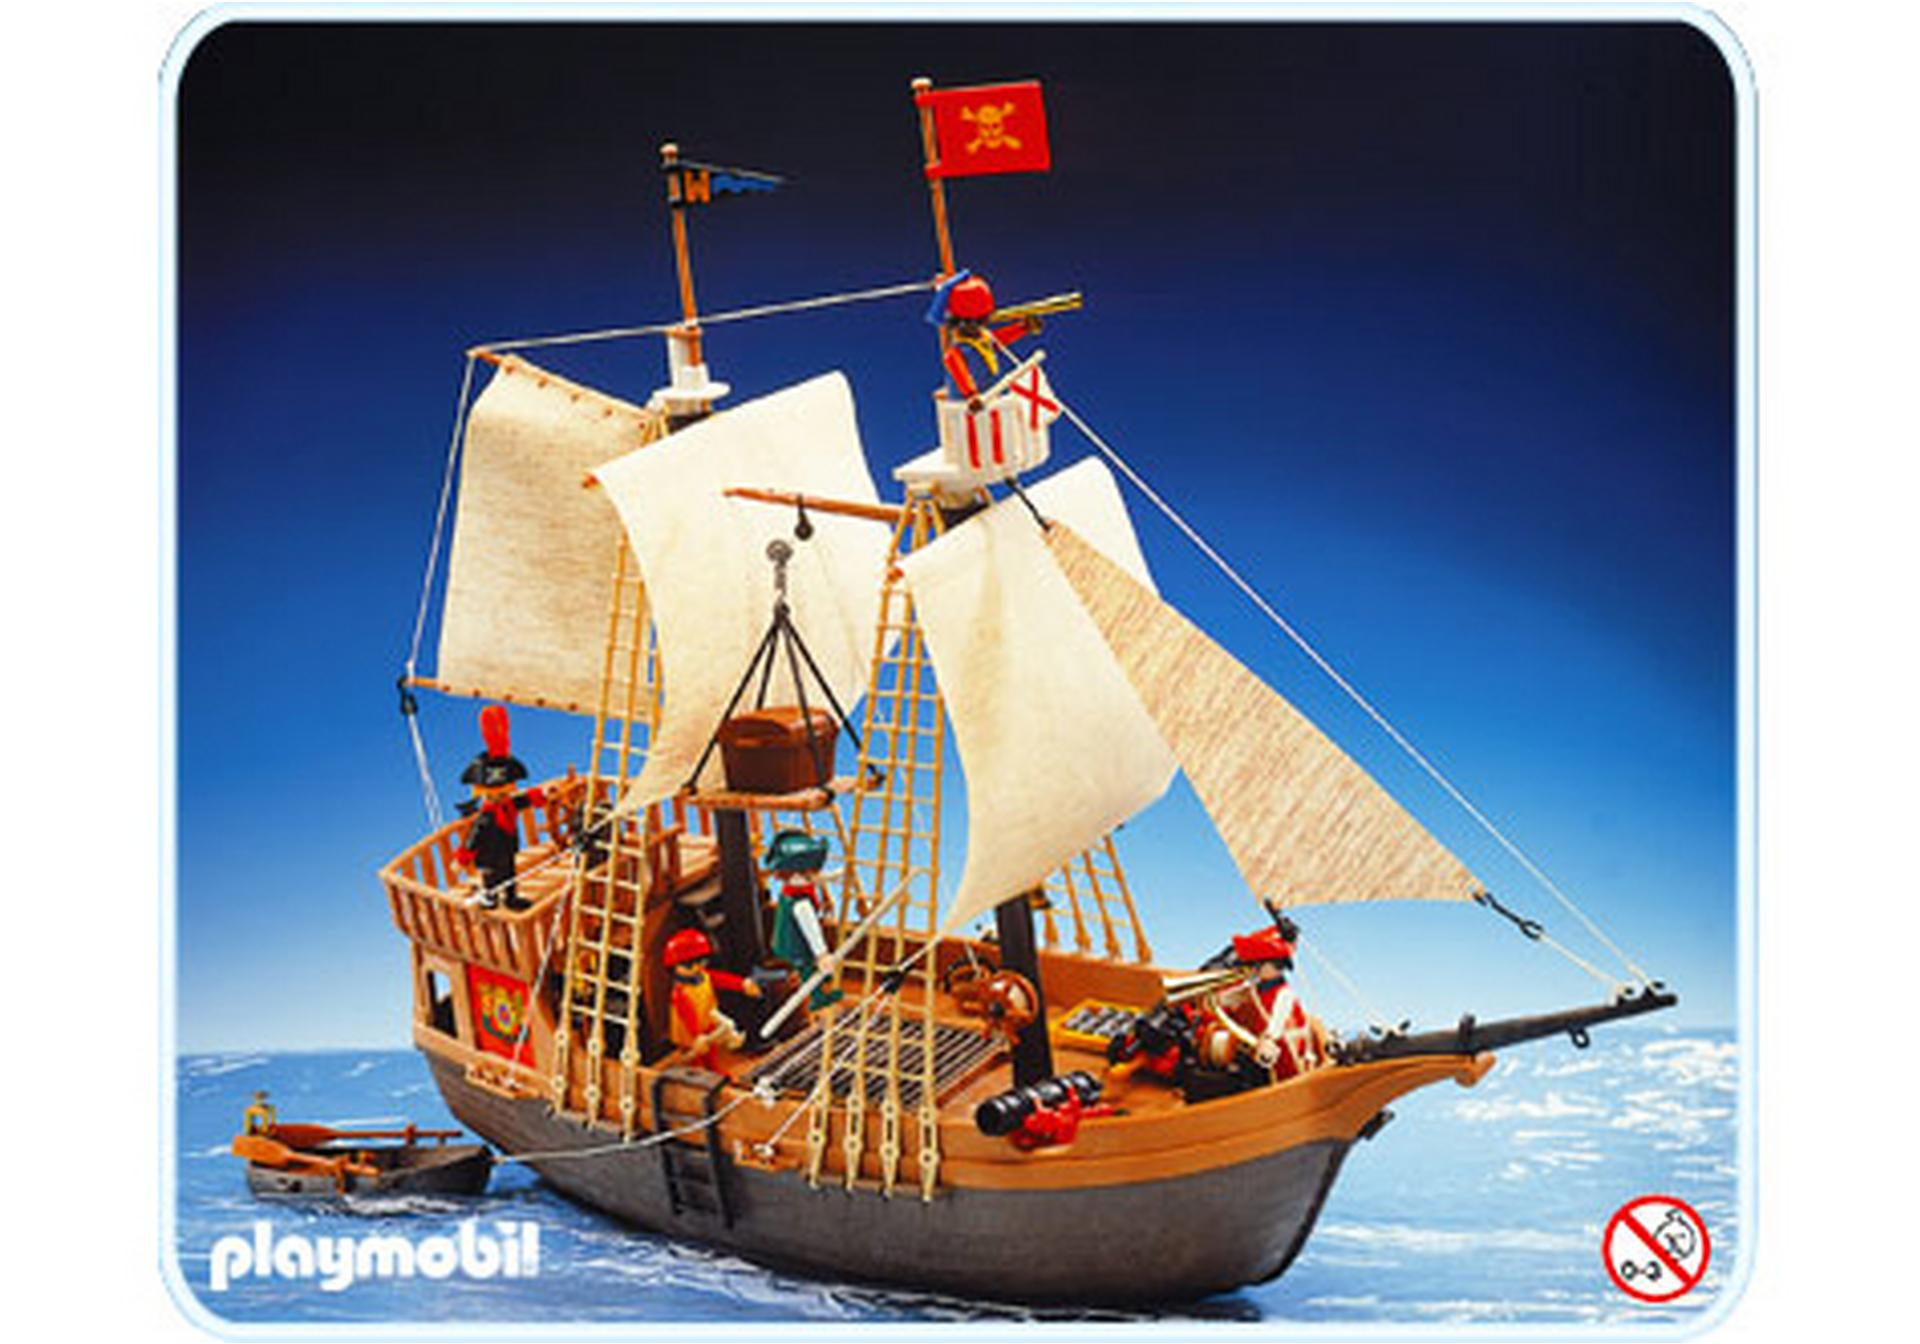 Piratenschiff 3550 b playmobil suisse for Barco pirata playmobil